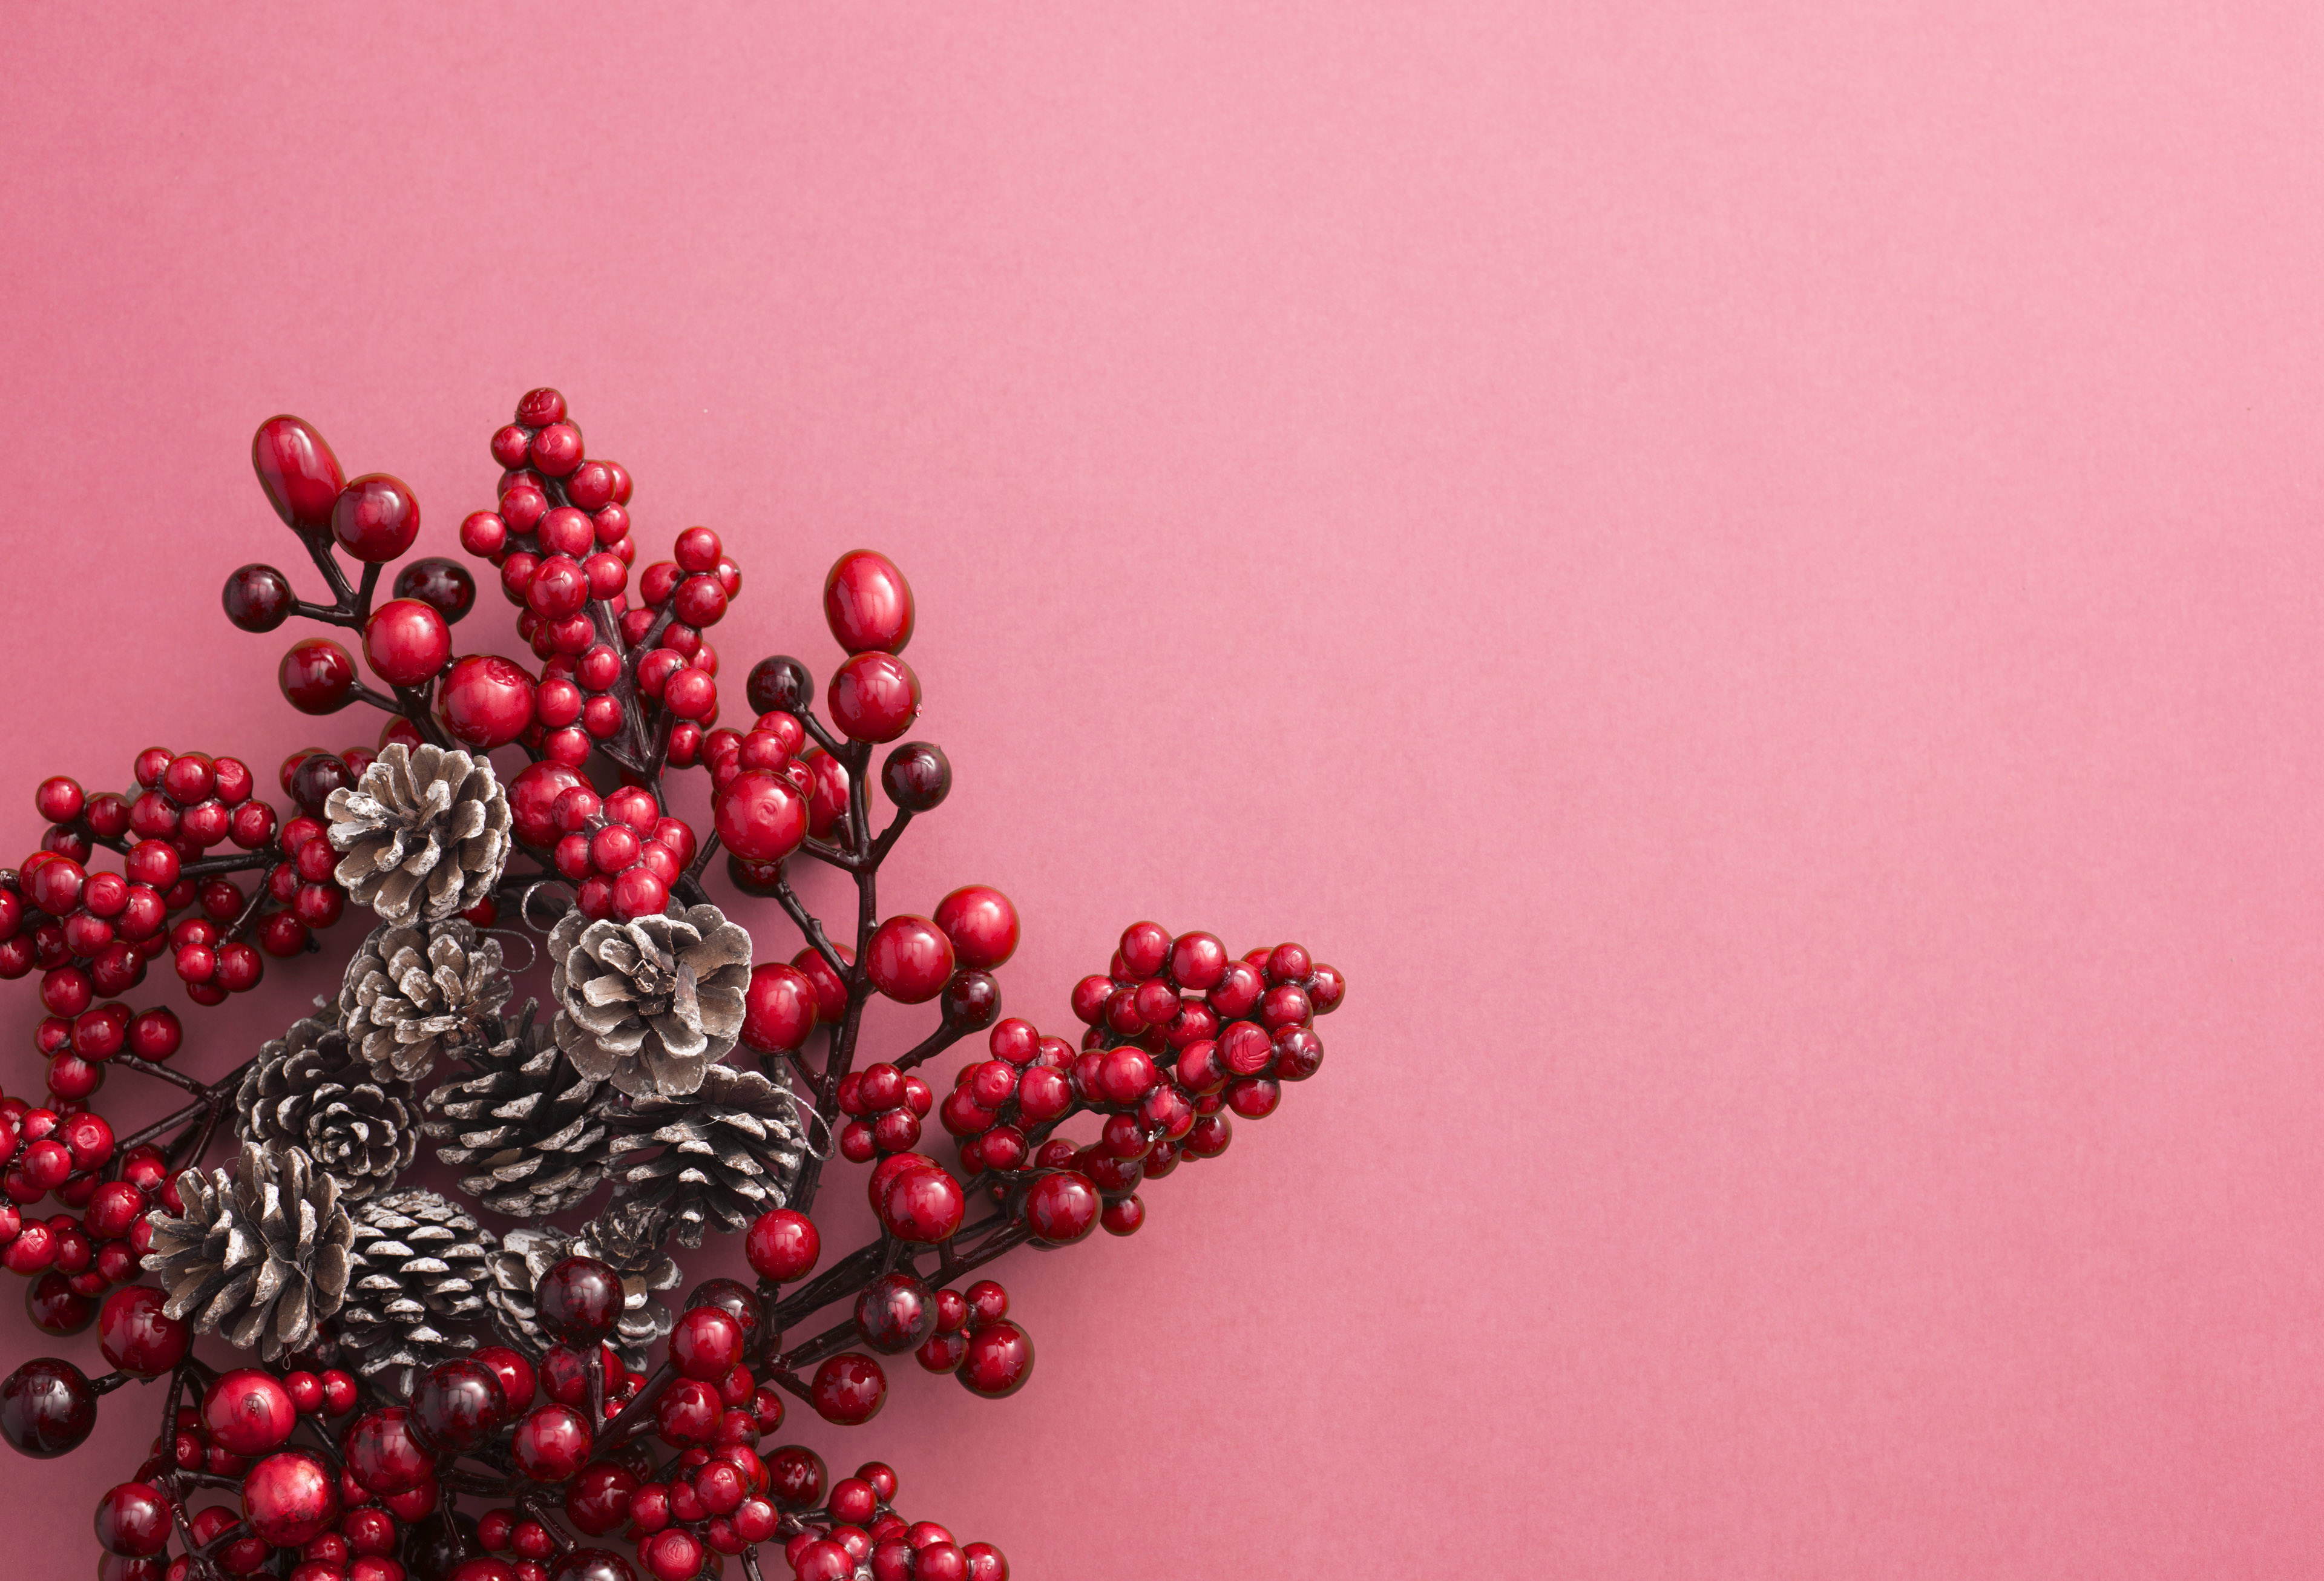 A decorative red berry Christmas wreath with frosted pine cones isolated on a plain pink background with copy space.